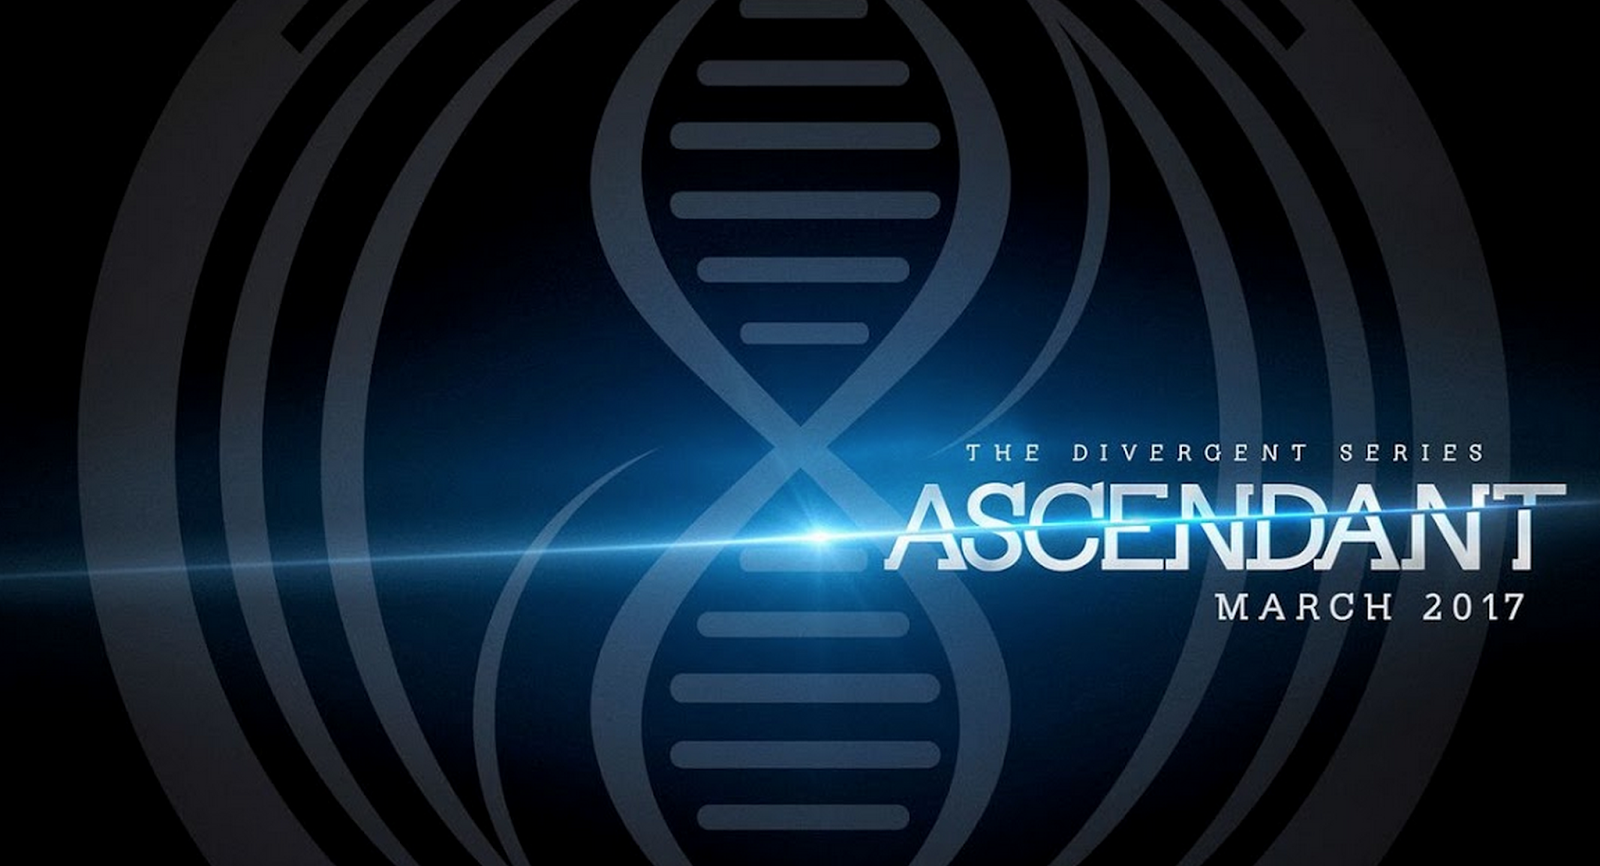 MOVIES: The Divergent Series: Ascendant - News Roundup